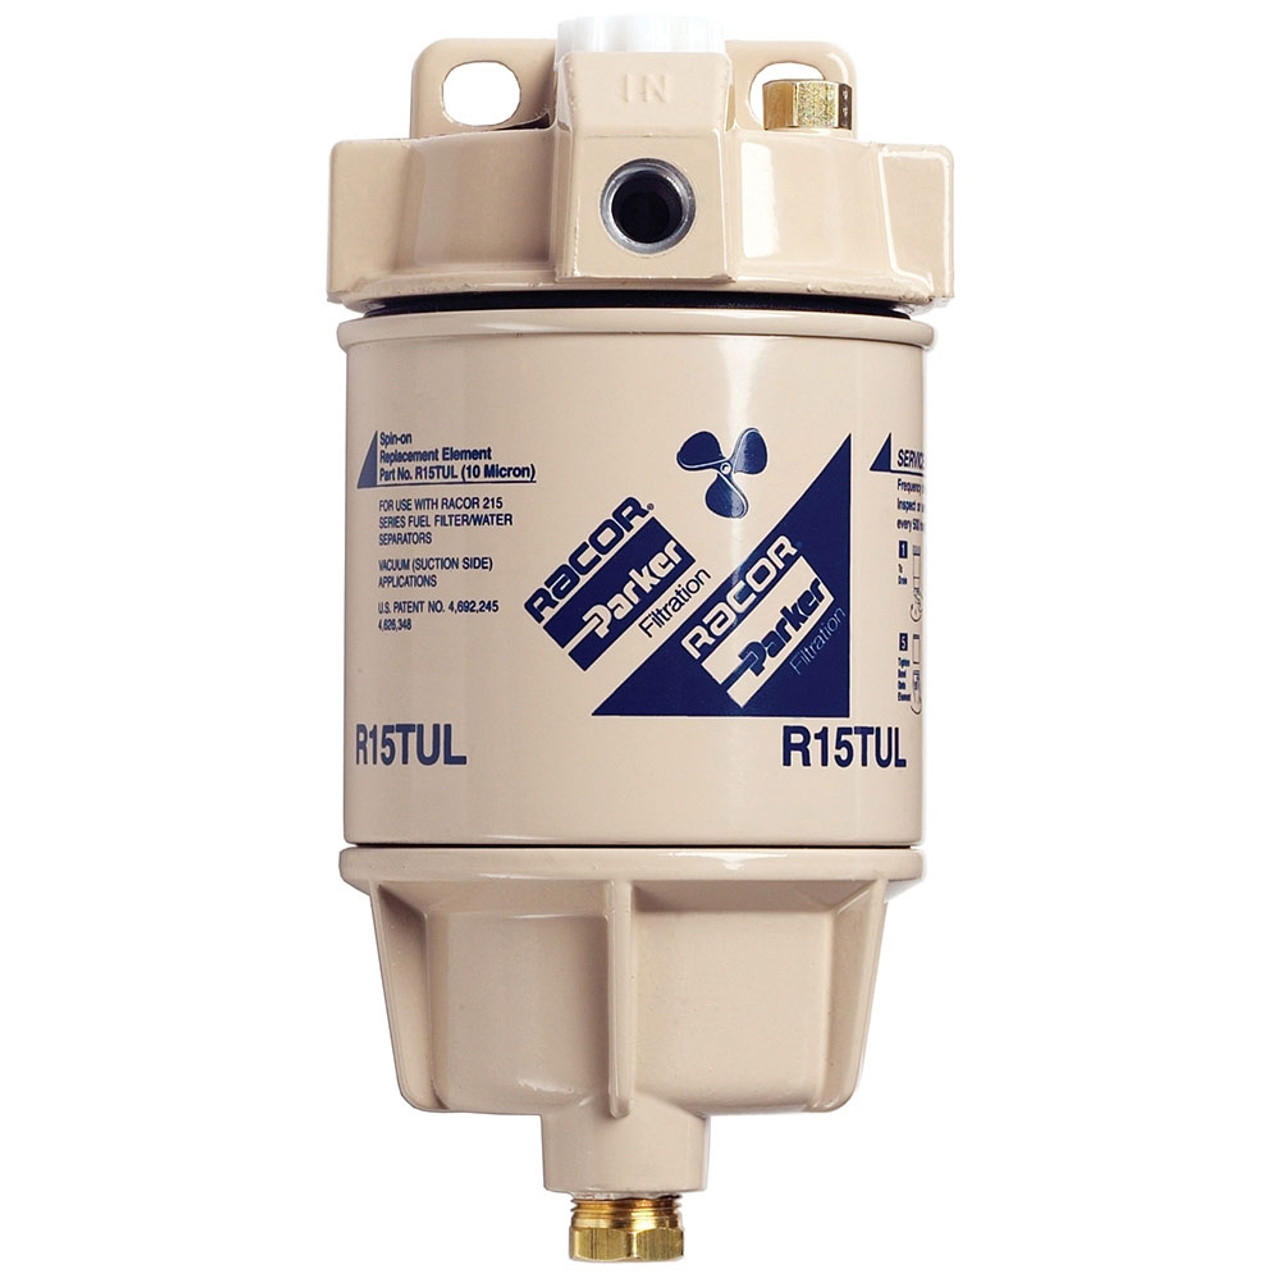 hight resolution of racor 1 4 in 15 gph aquabloc marine spin on type diesel fuel filter water separator assembly 6 qty john m ellsworth co inc